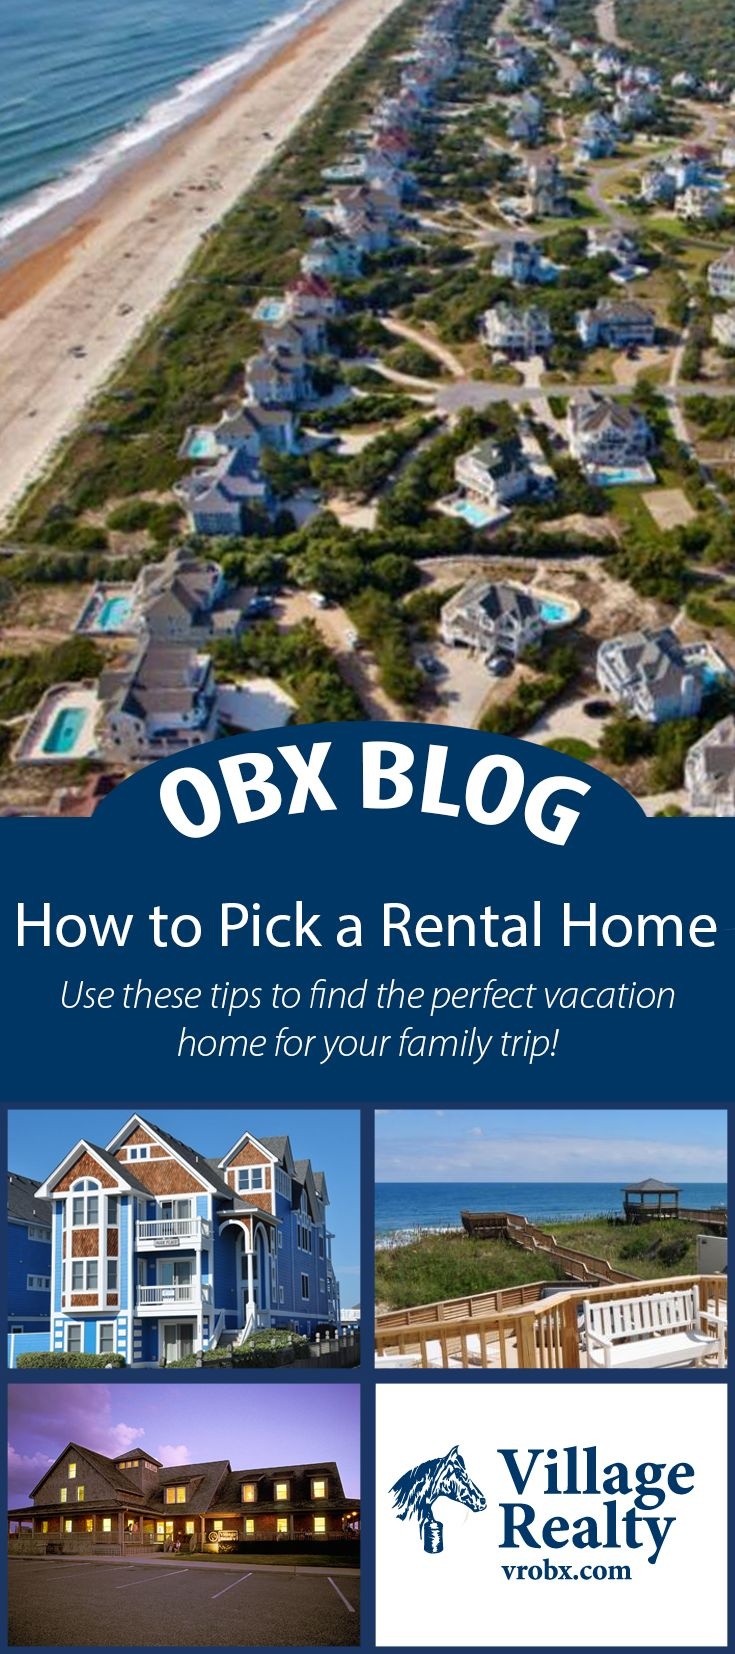 Find the best Outer Banks vacation rentals! Here's how! #OBX #OuterBanks #Vacation #Beach #VROBX